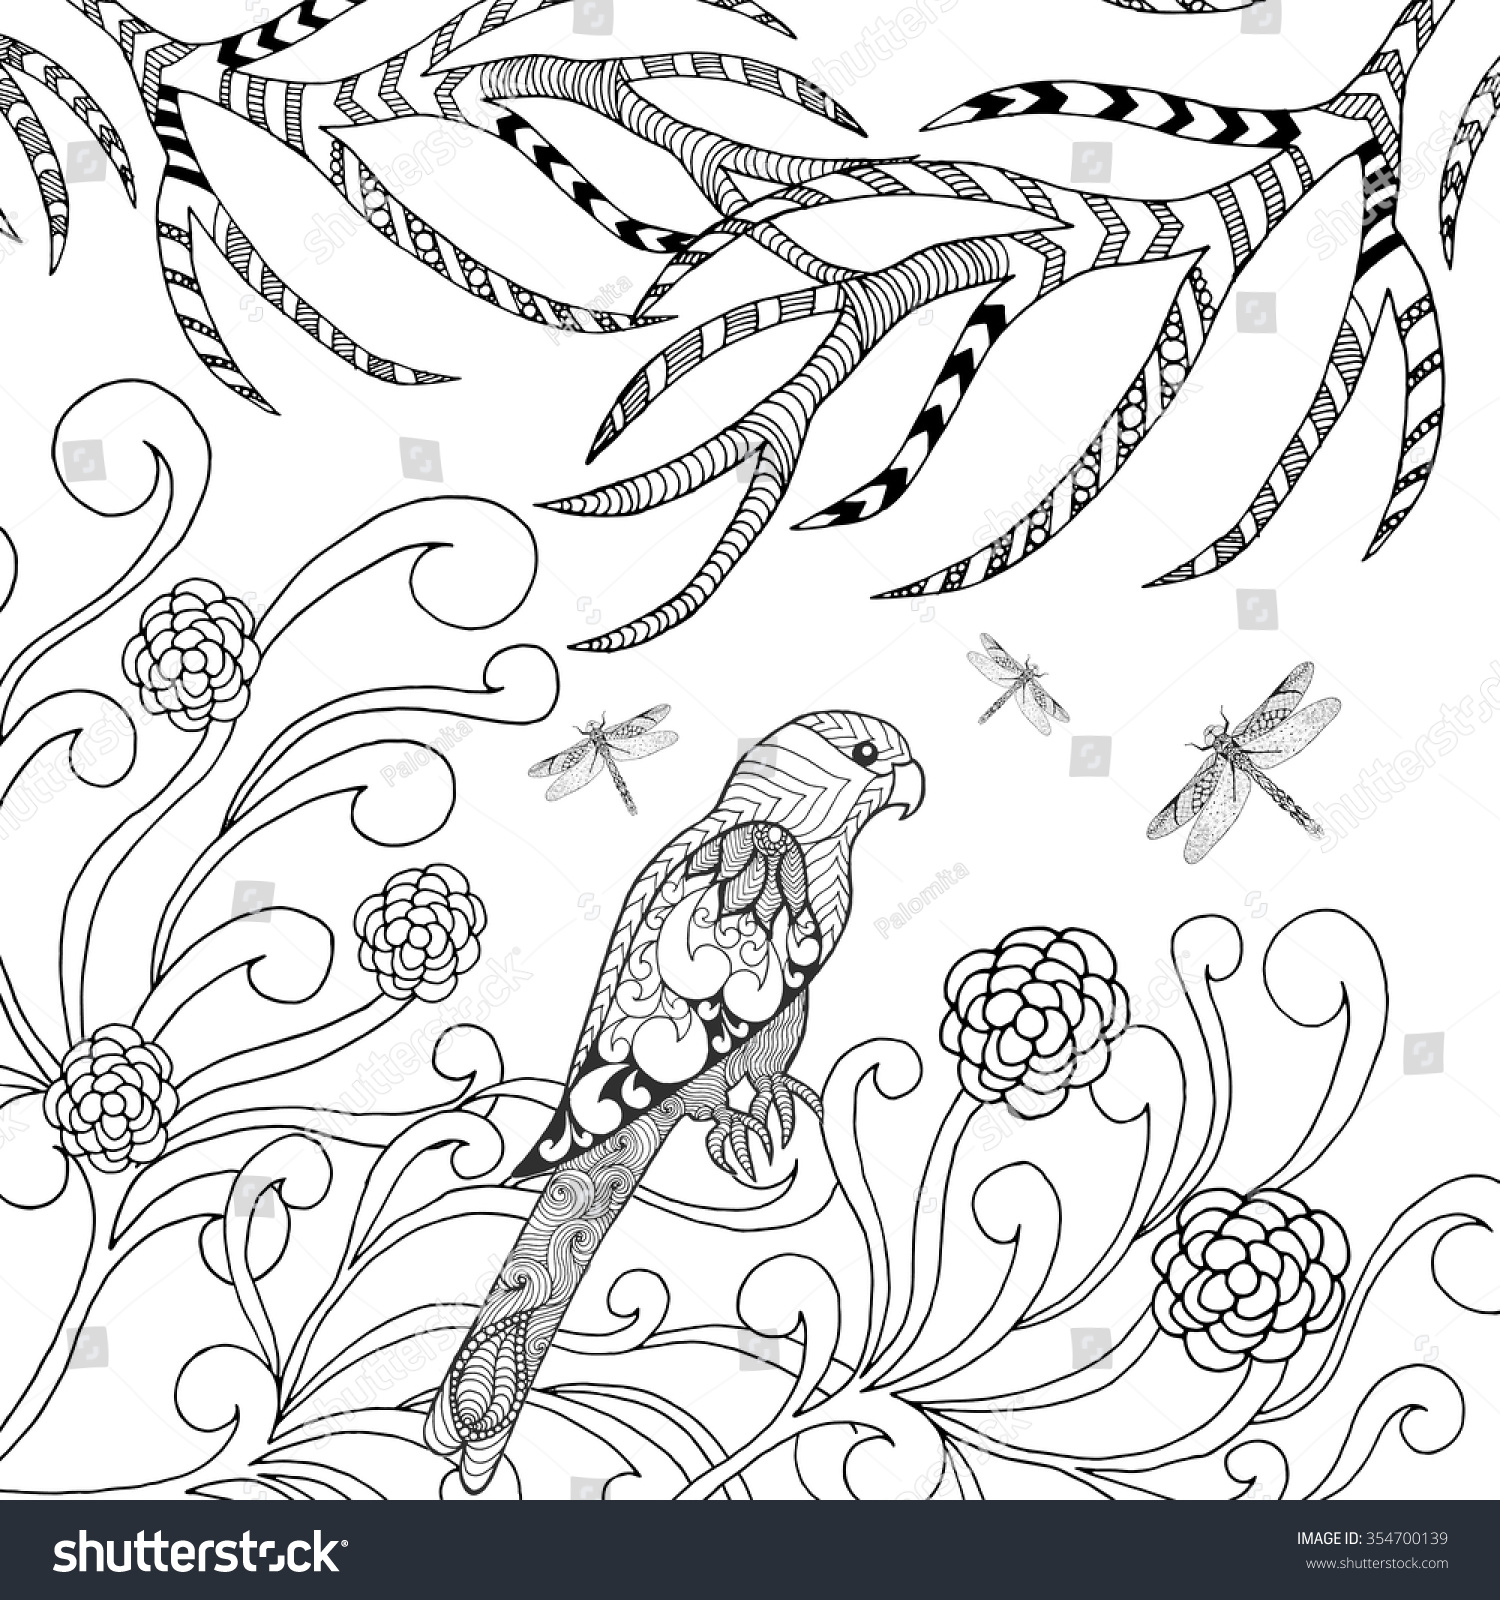 tropical bird coloring pages - photo#29